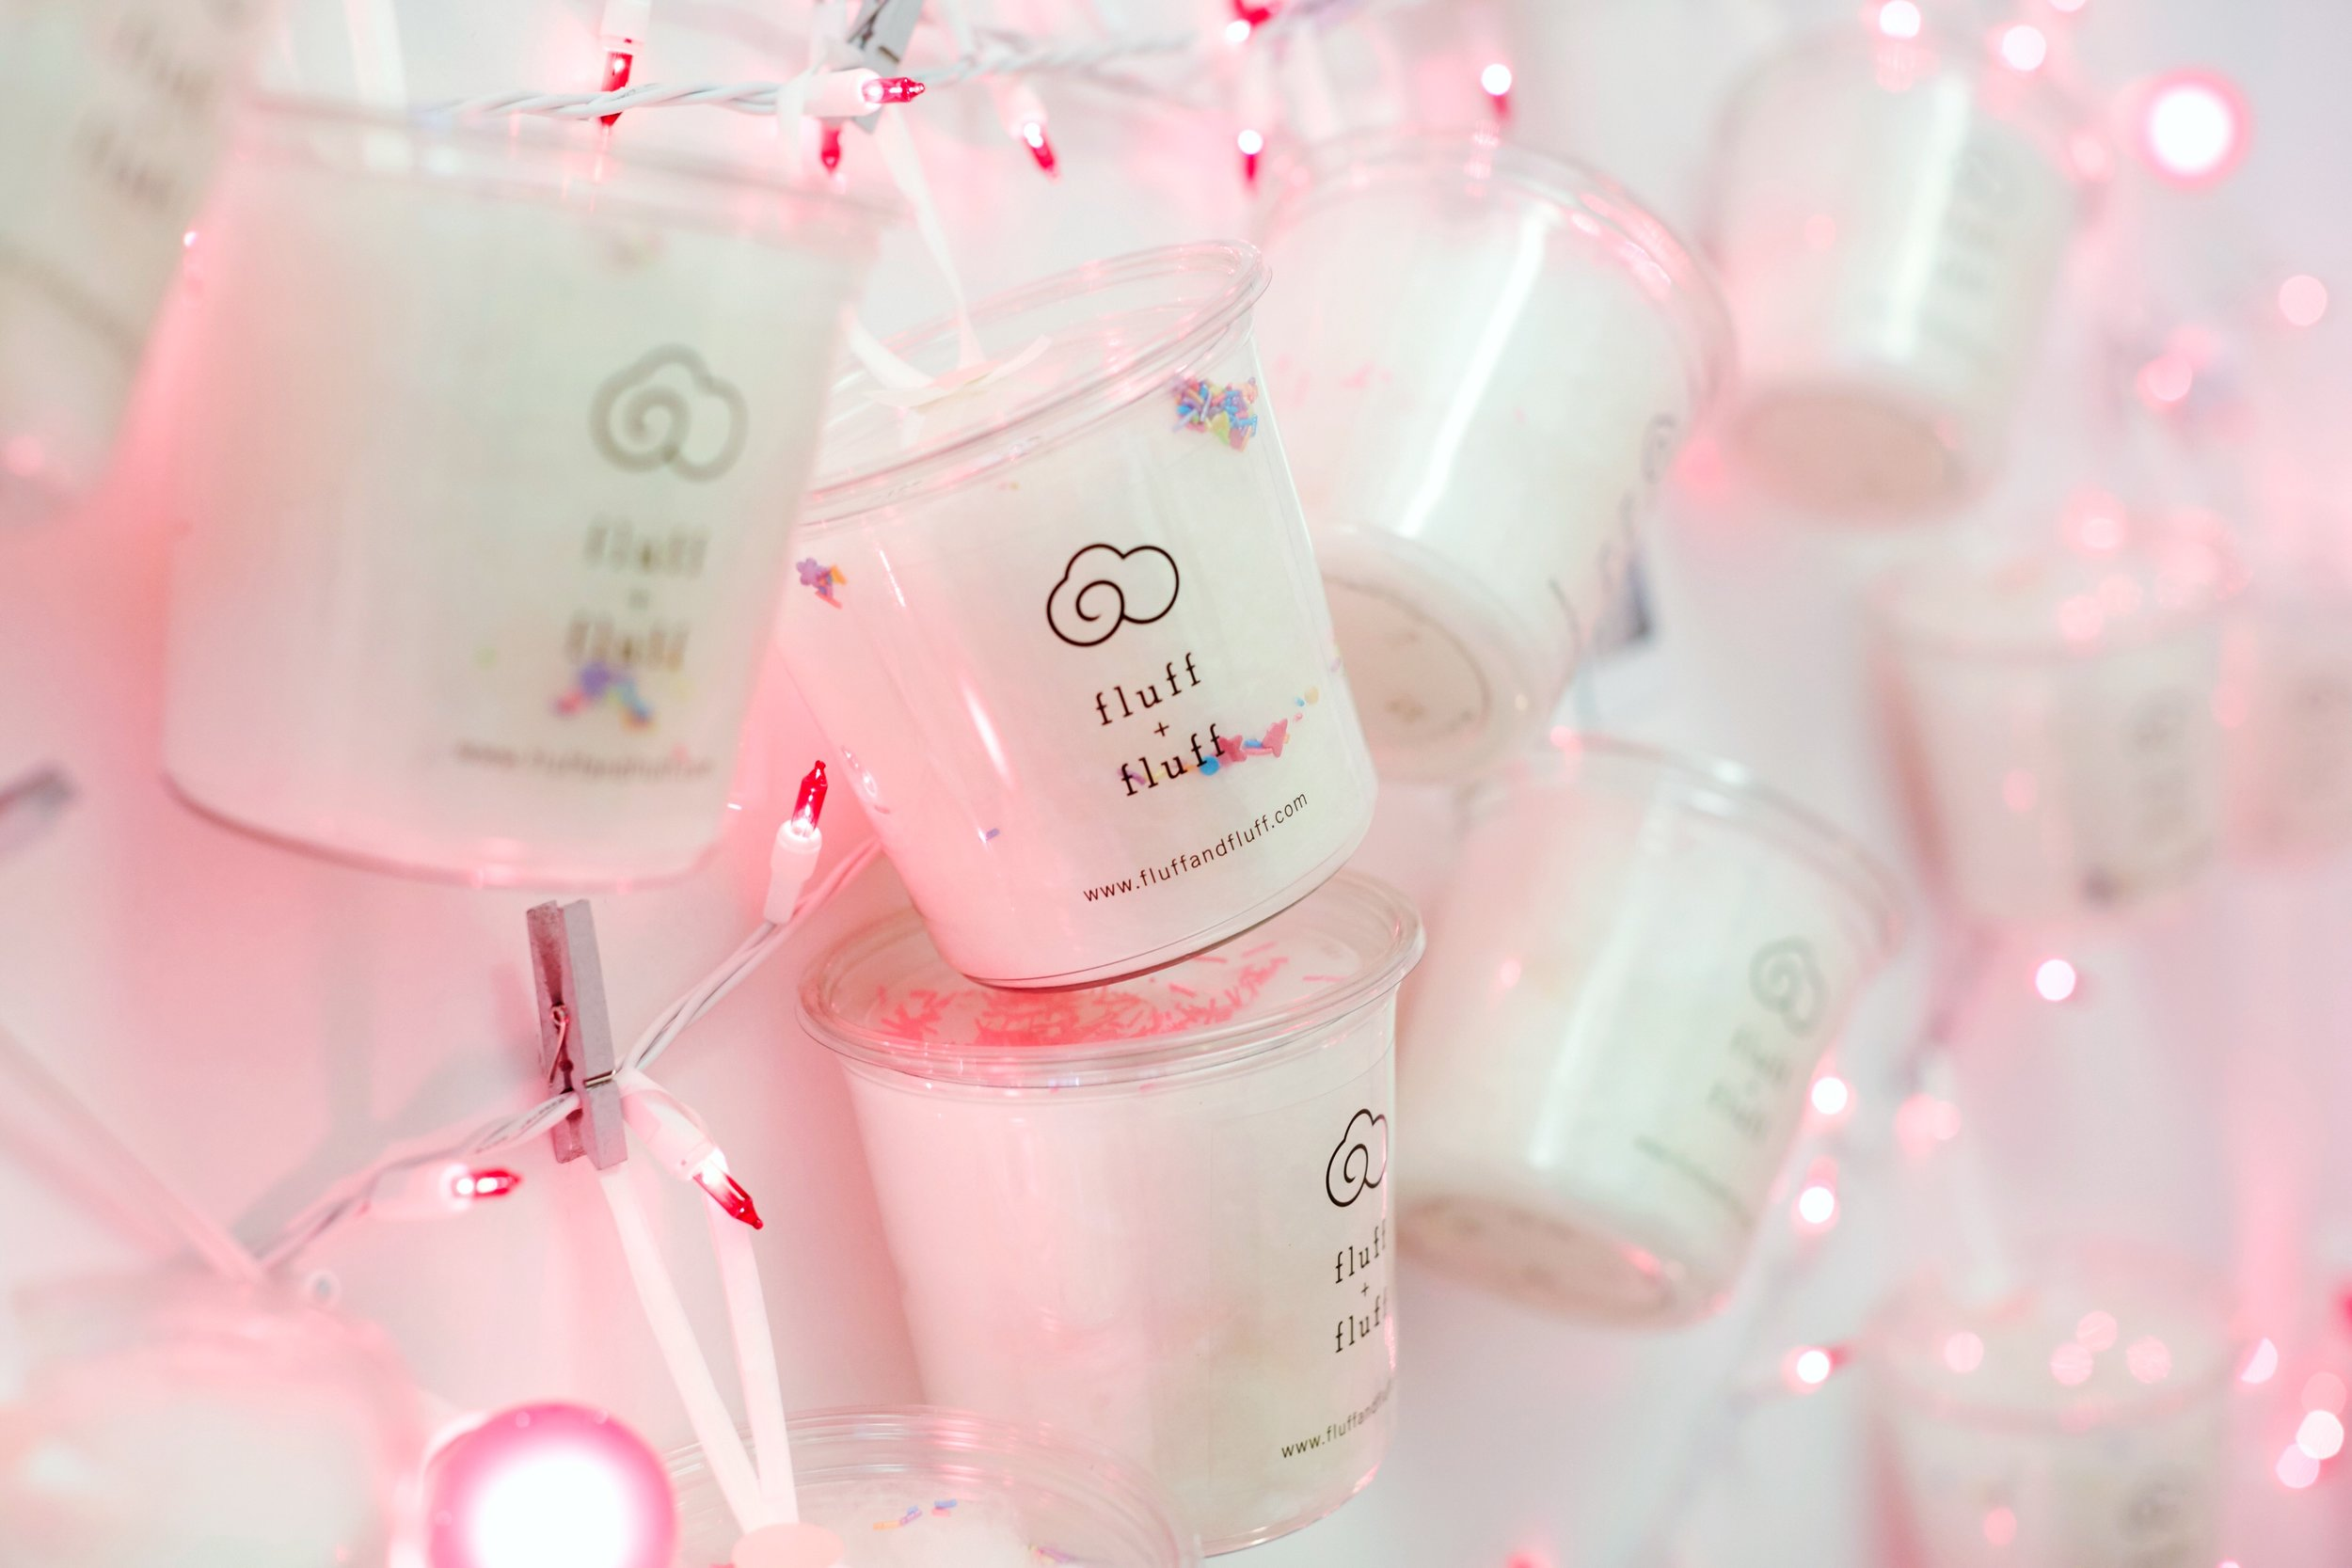 Customized Tubs for a string light holiday, holiday preview